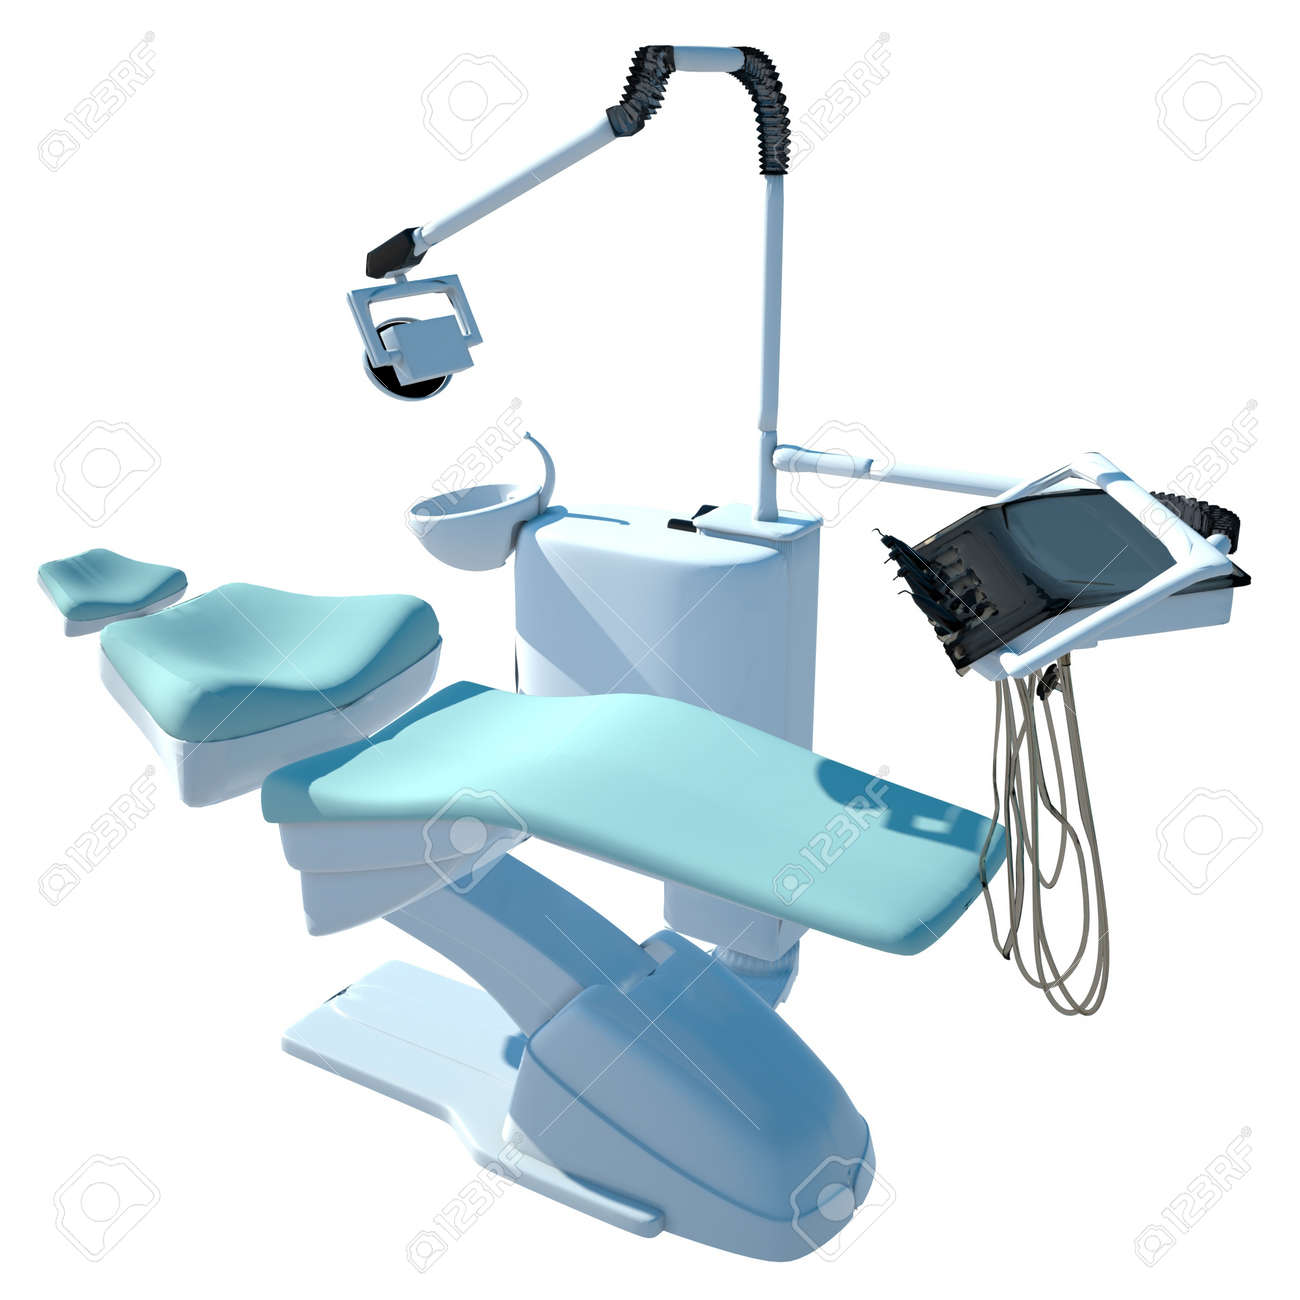 dental dentist stool saddle loading mobile pu standard doctors leather is chair doctor s itm image